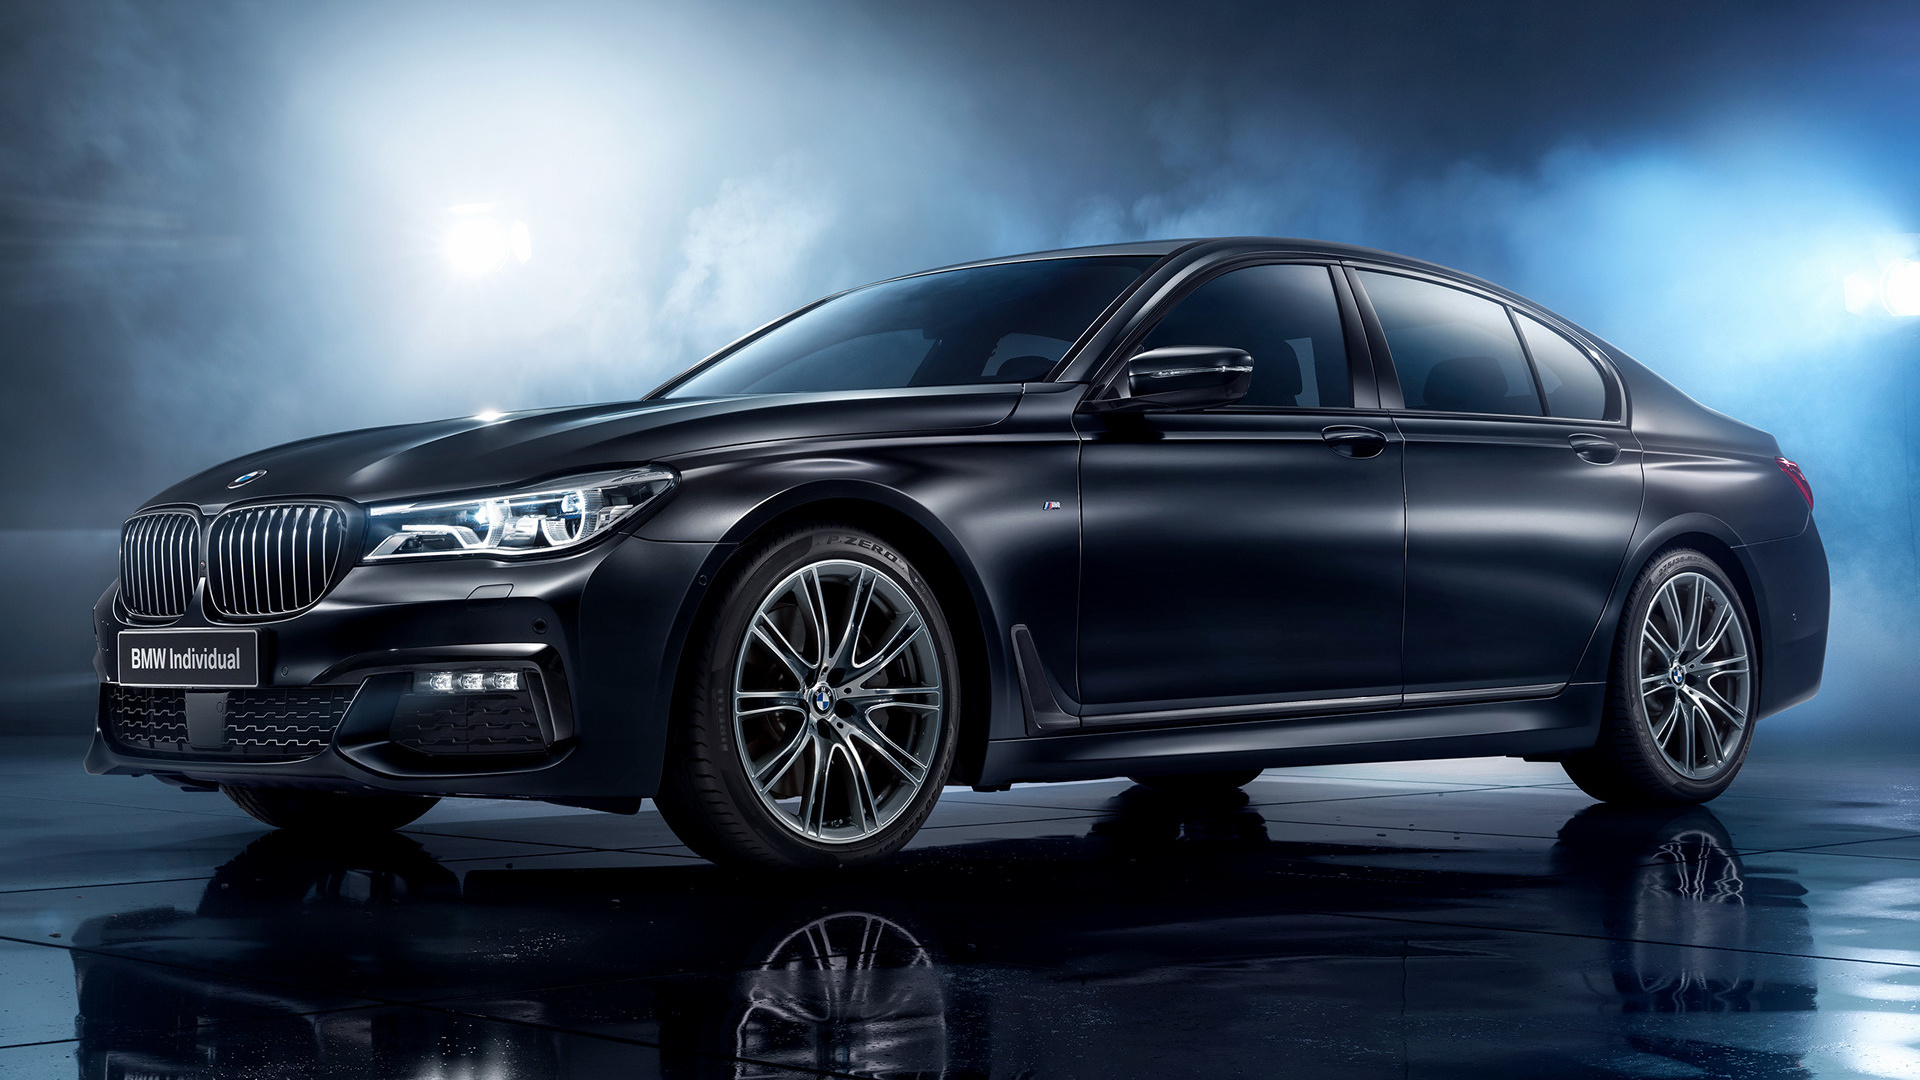 2017 BMW 7 Series Black Ice Edition (RU) - Wallpapers and HD Images | Car Pixel